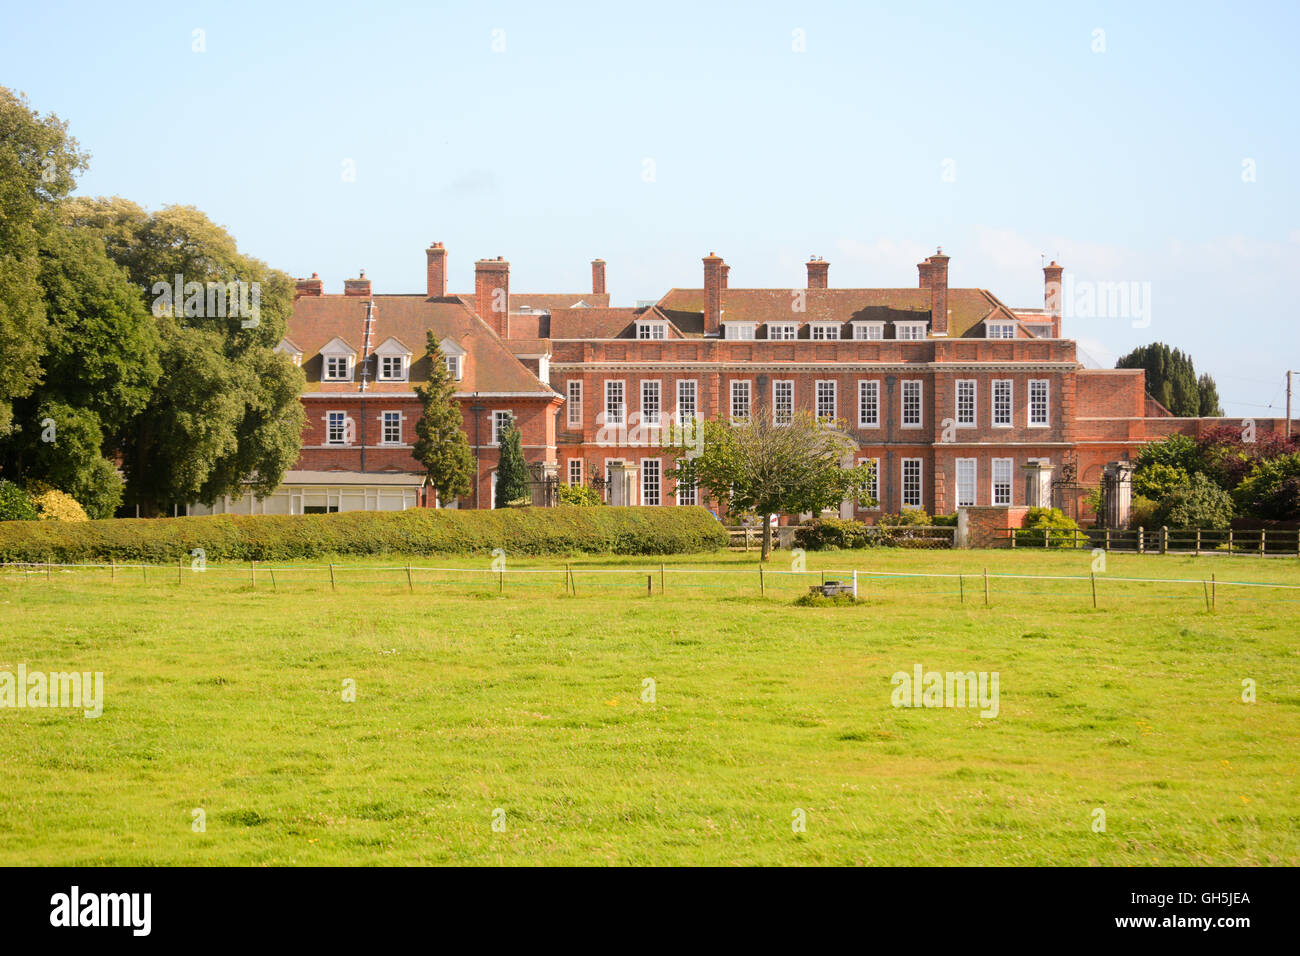 Walhampton School An Independent Day And Boarding School In The New